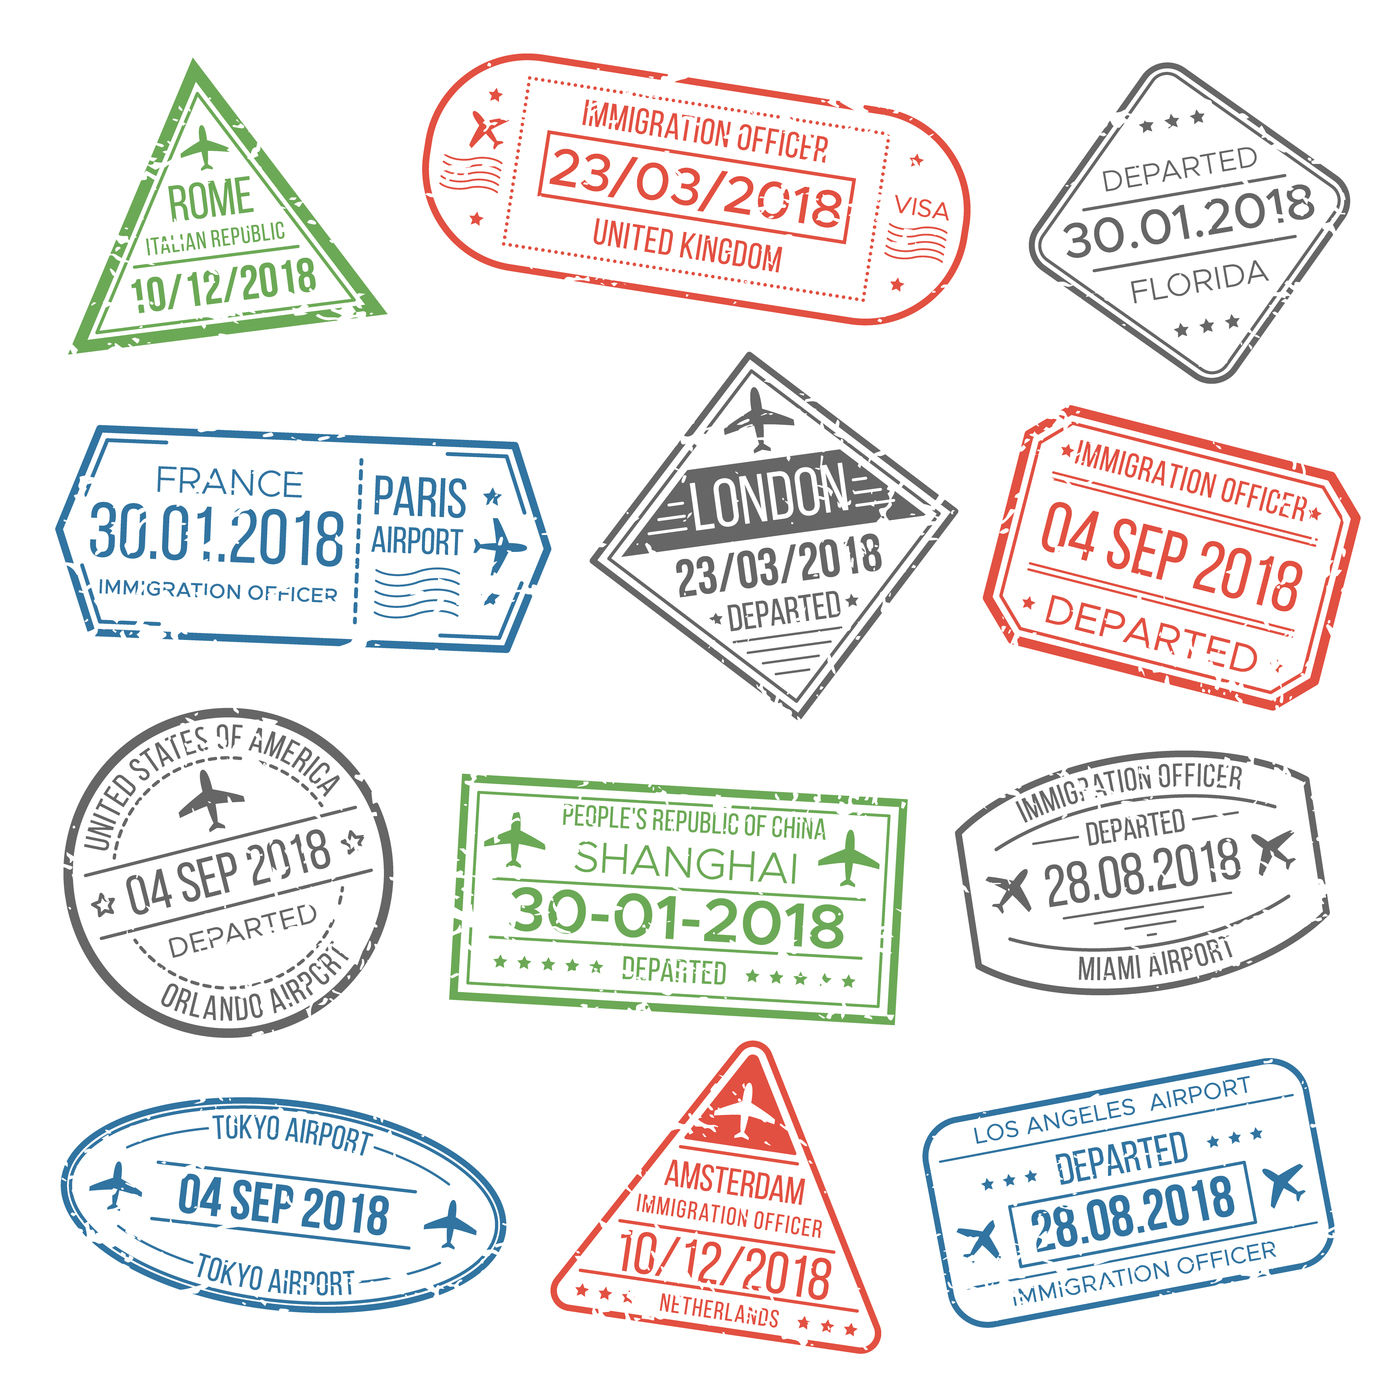 Visa Travel Cachet Passport Signs Or Airport Stamps With Framing